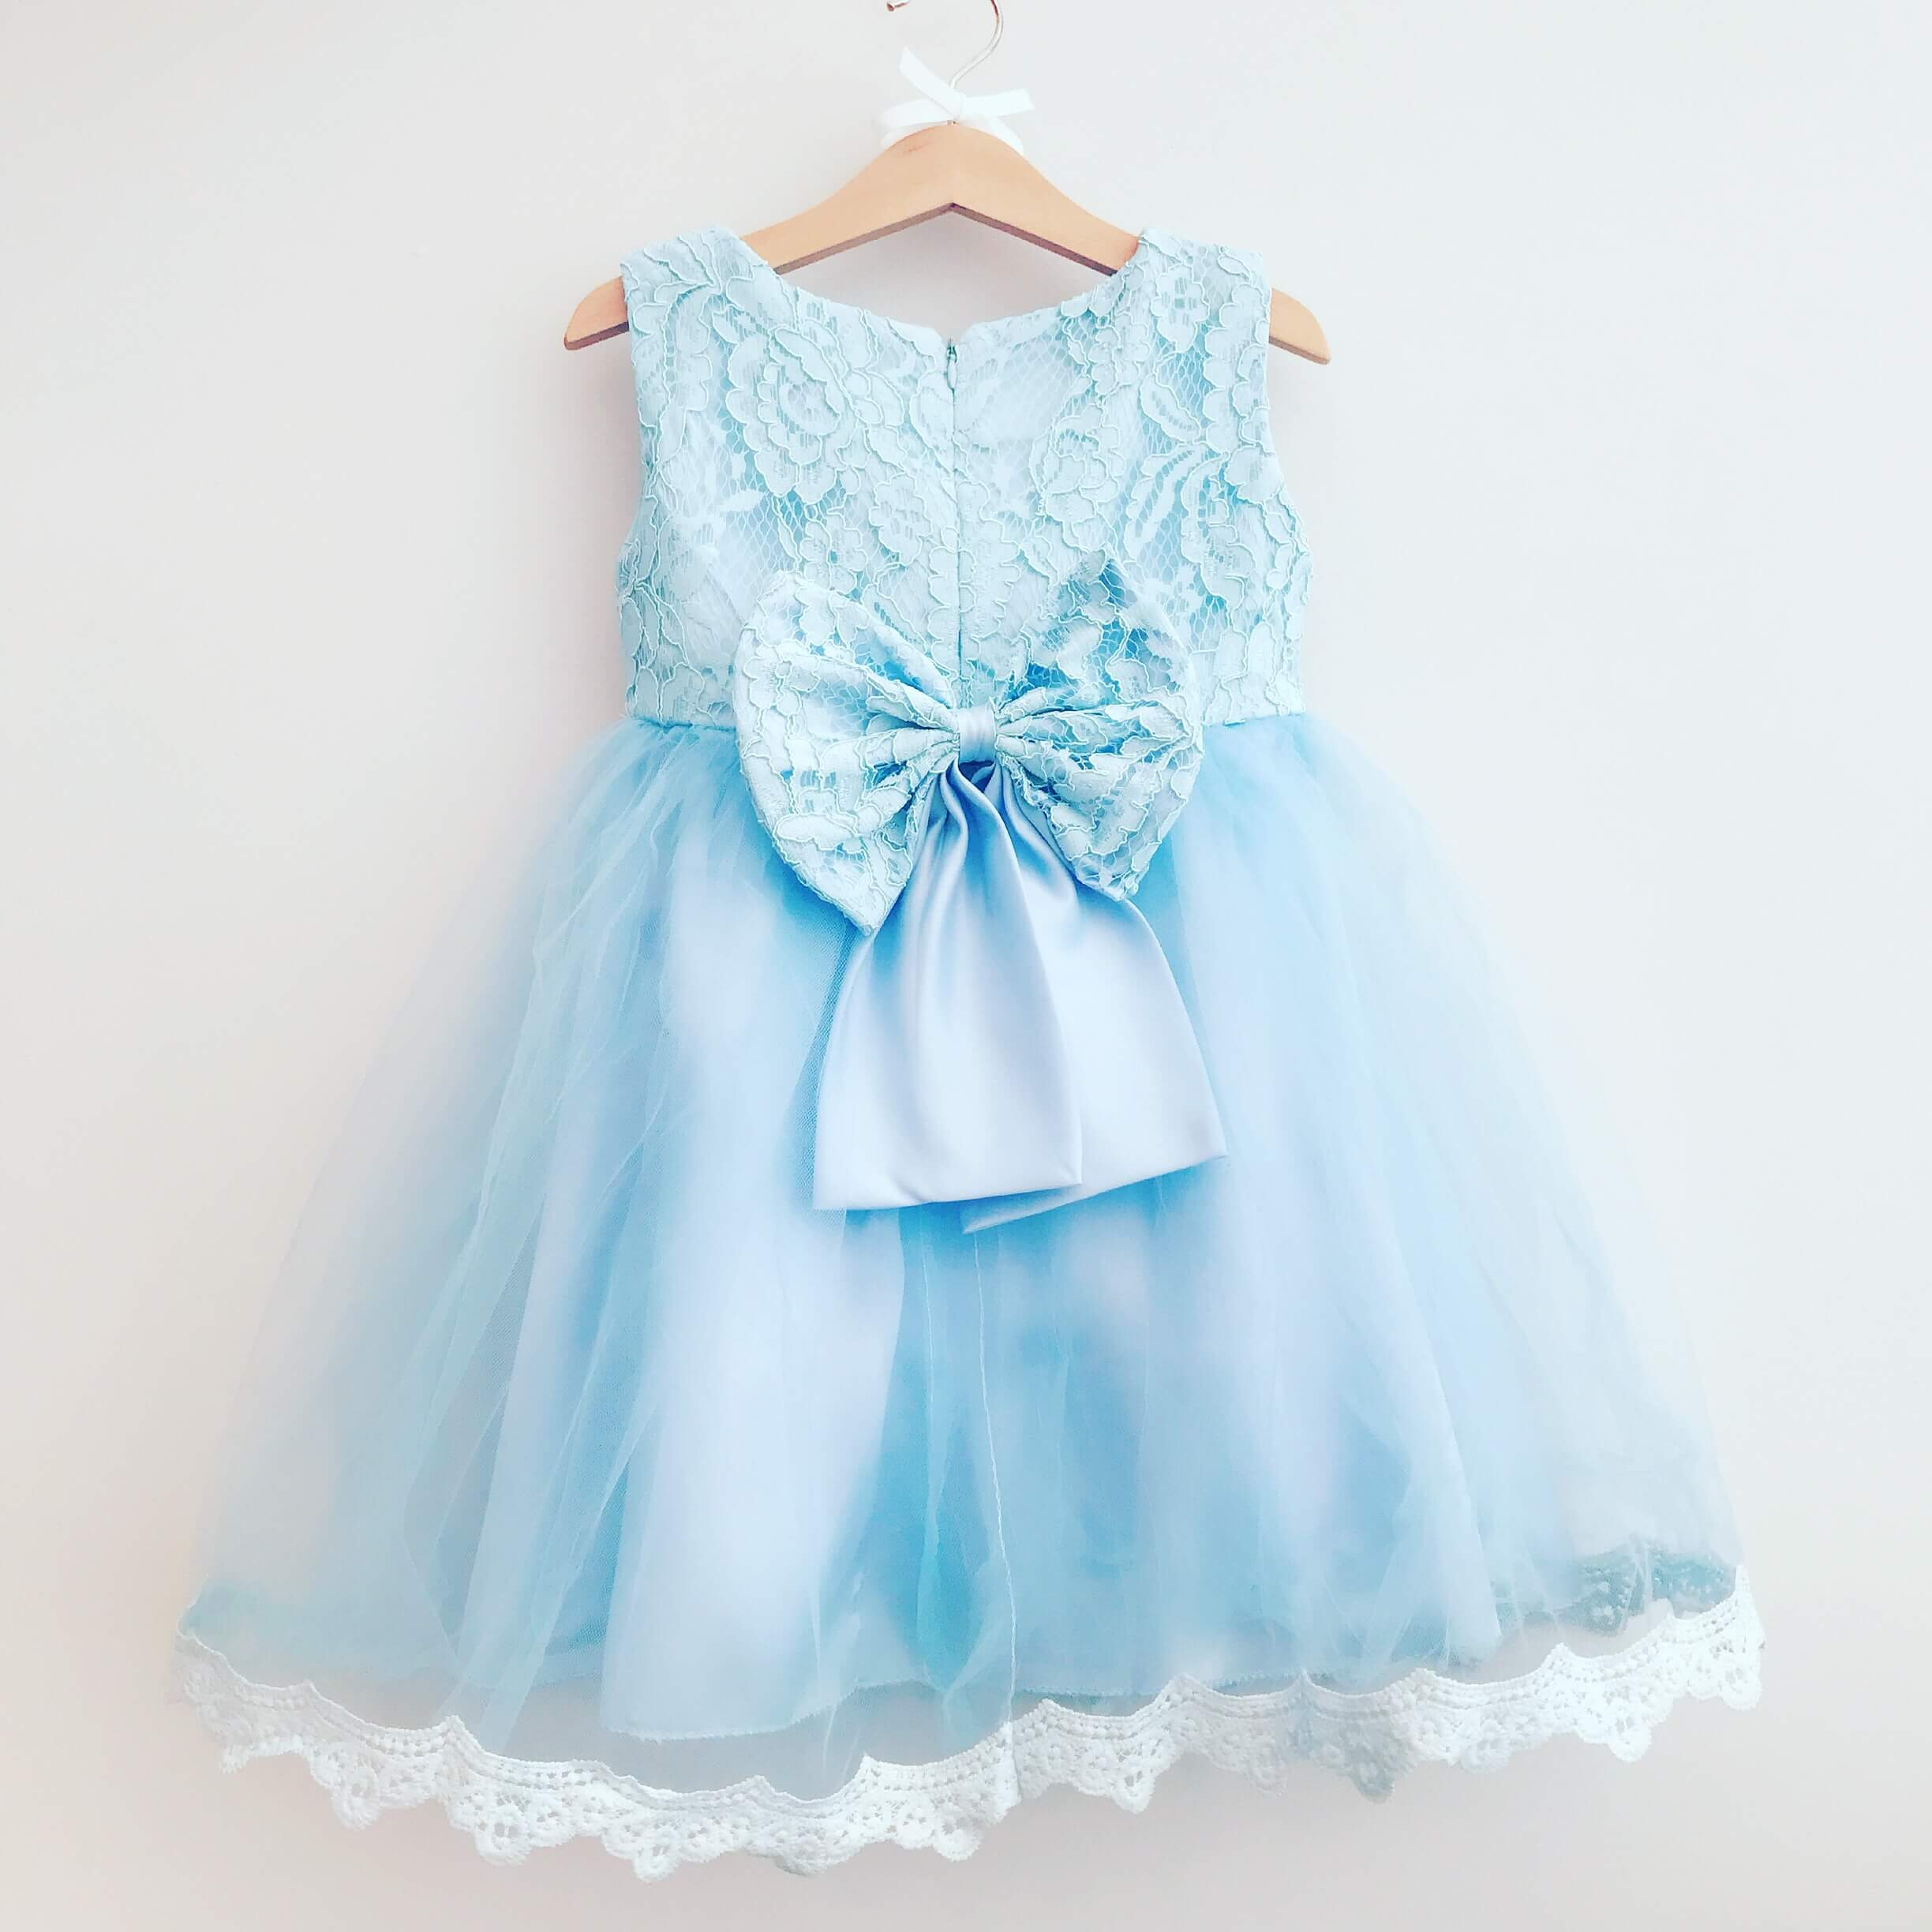 Blue Princess Bow Dress Baby Boutique Clothing